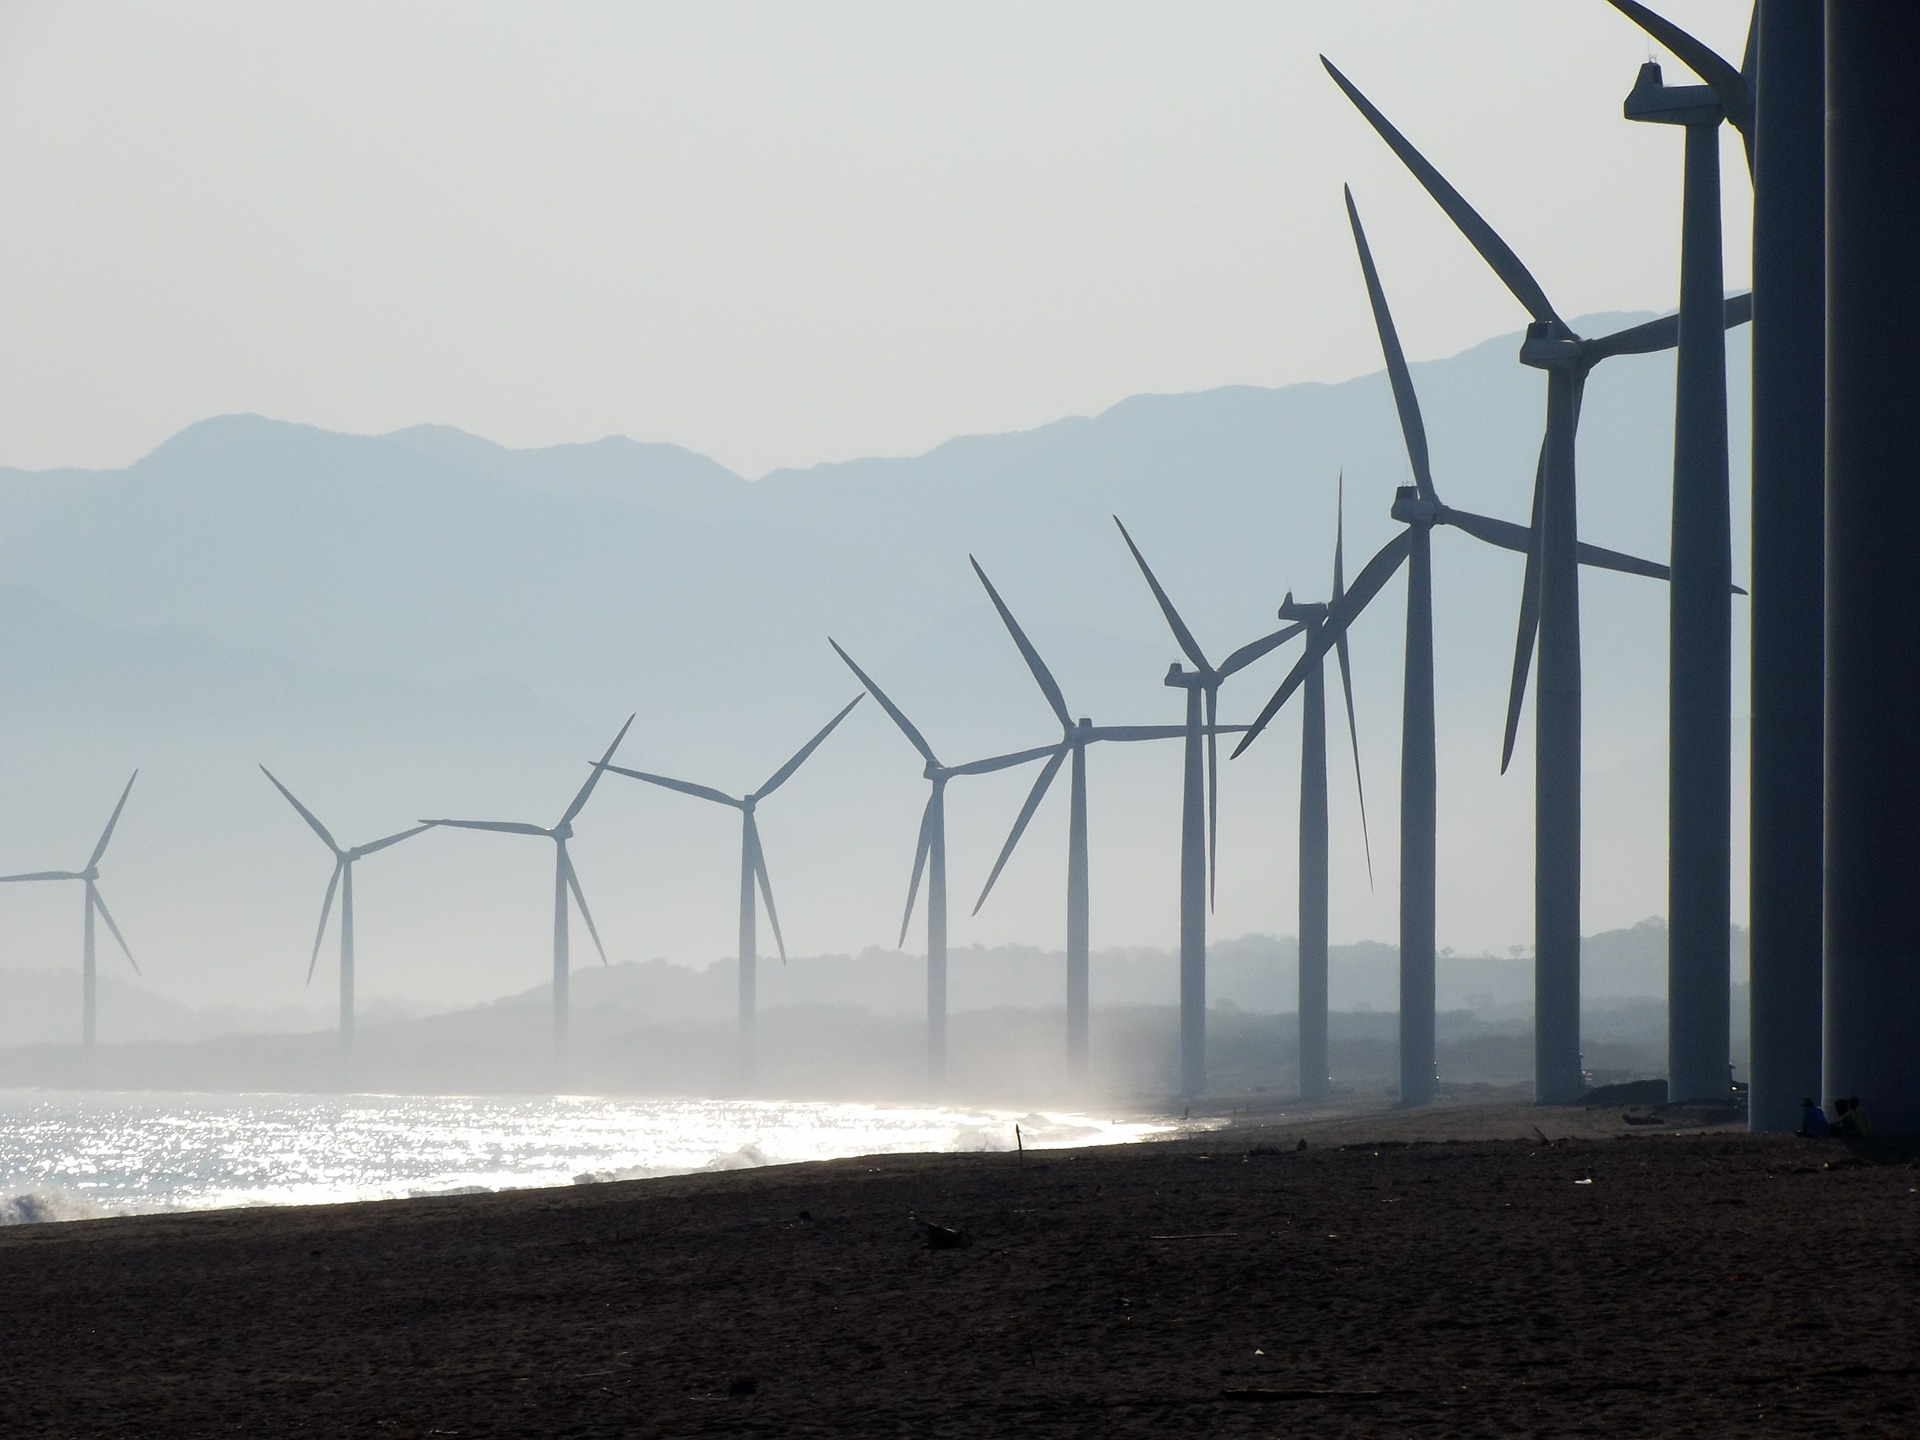 Renewable energies are offered as a solution to the economic crisis caused by the coronavirus